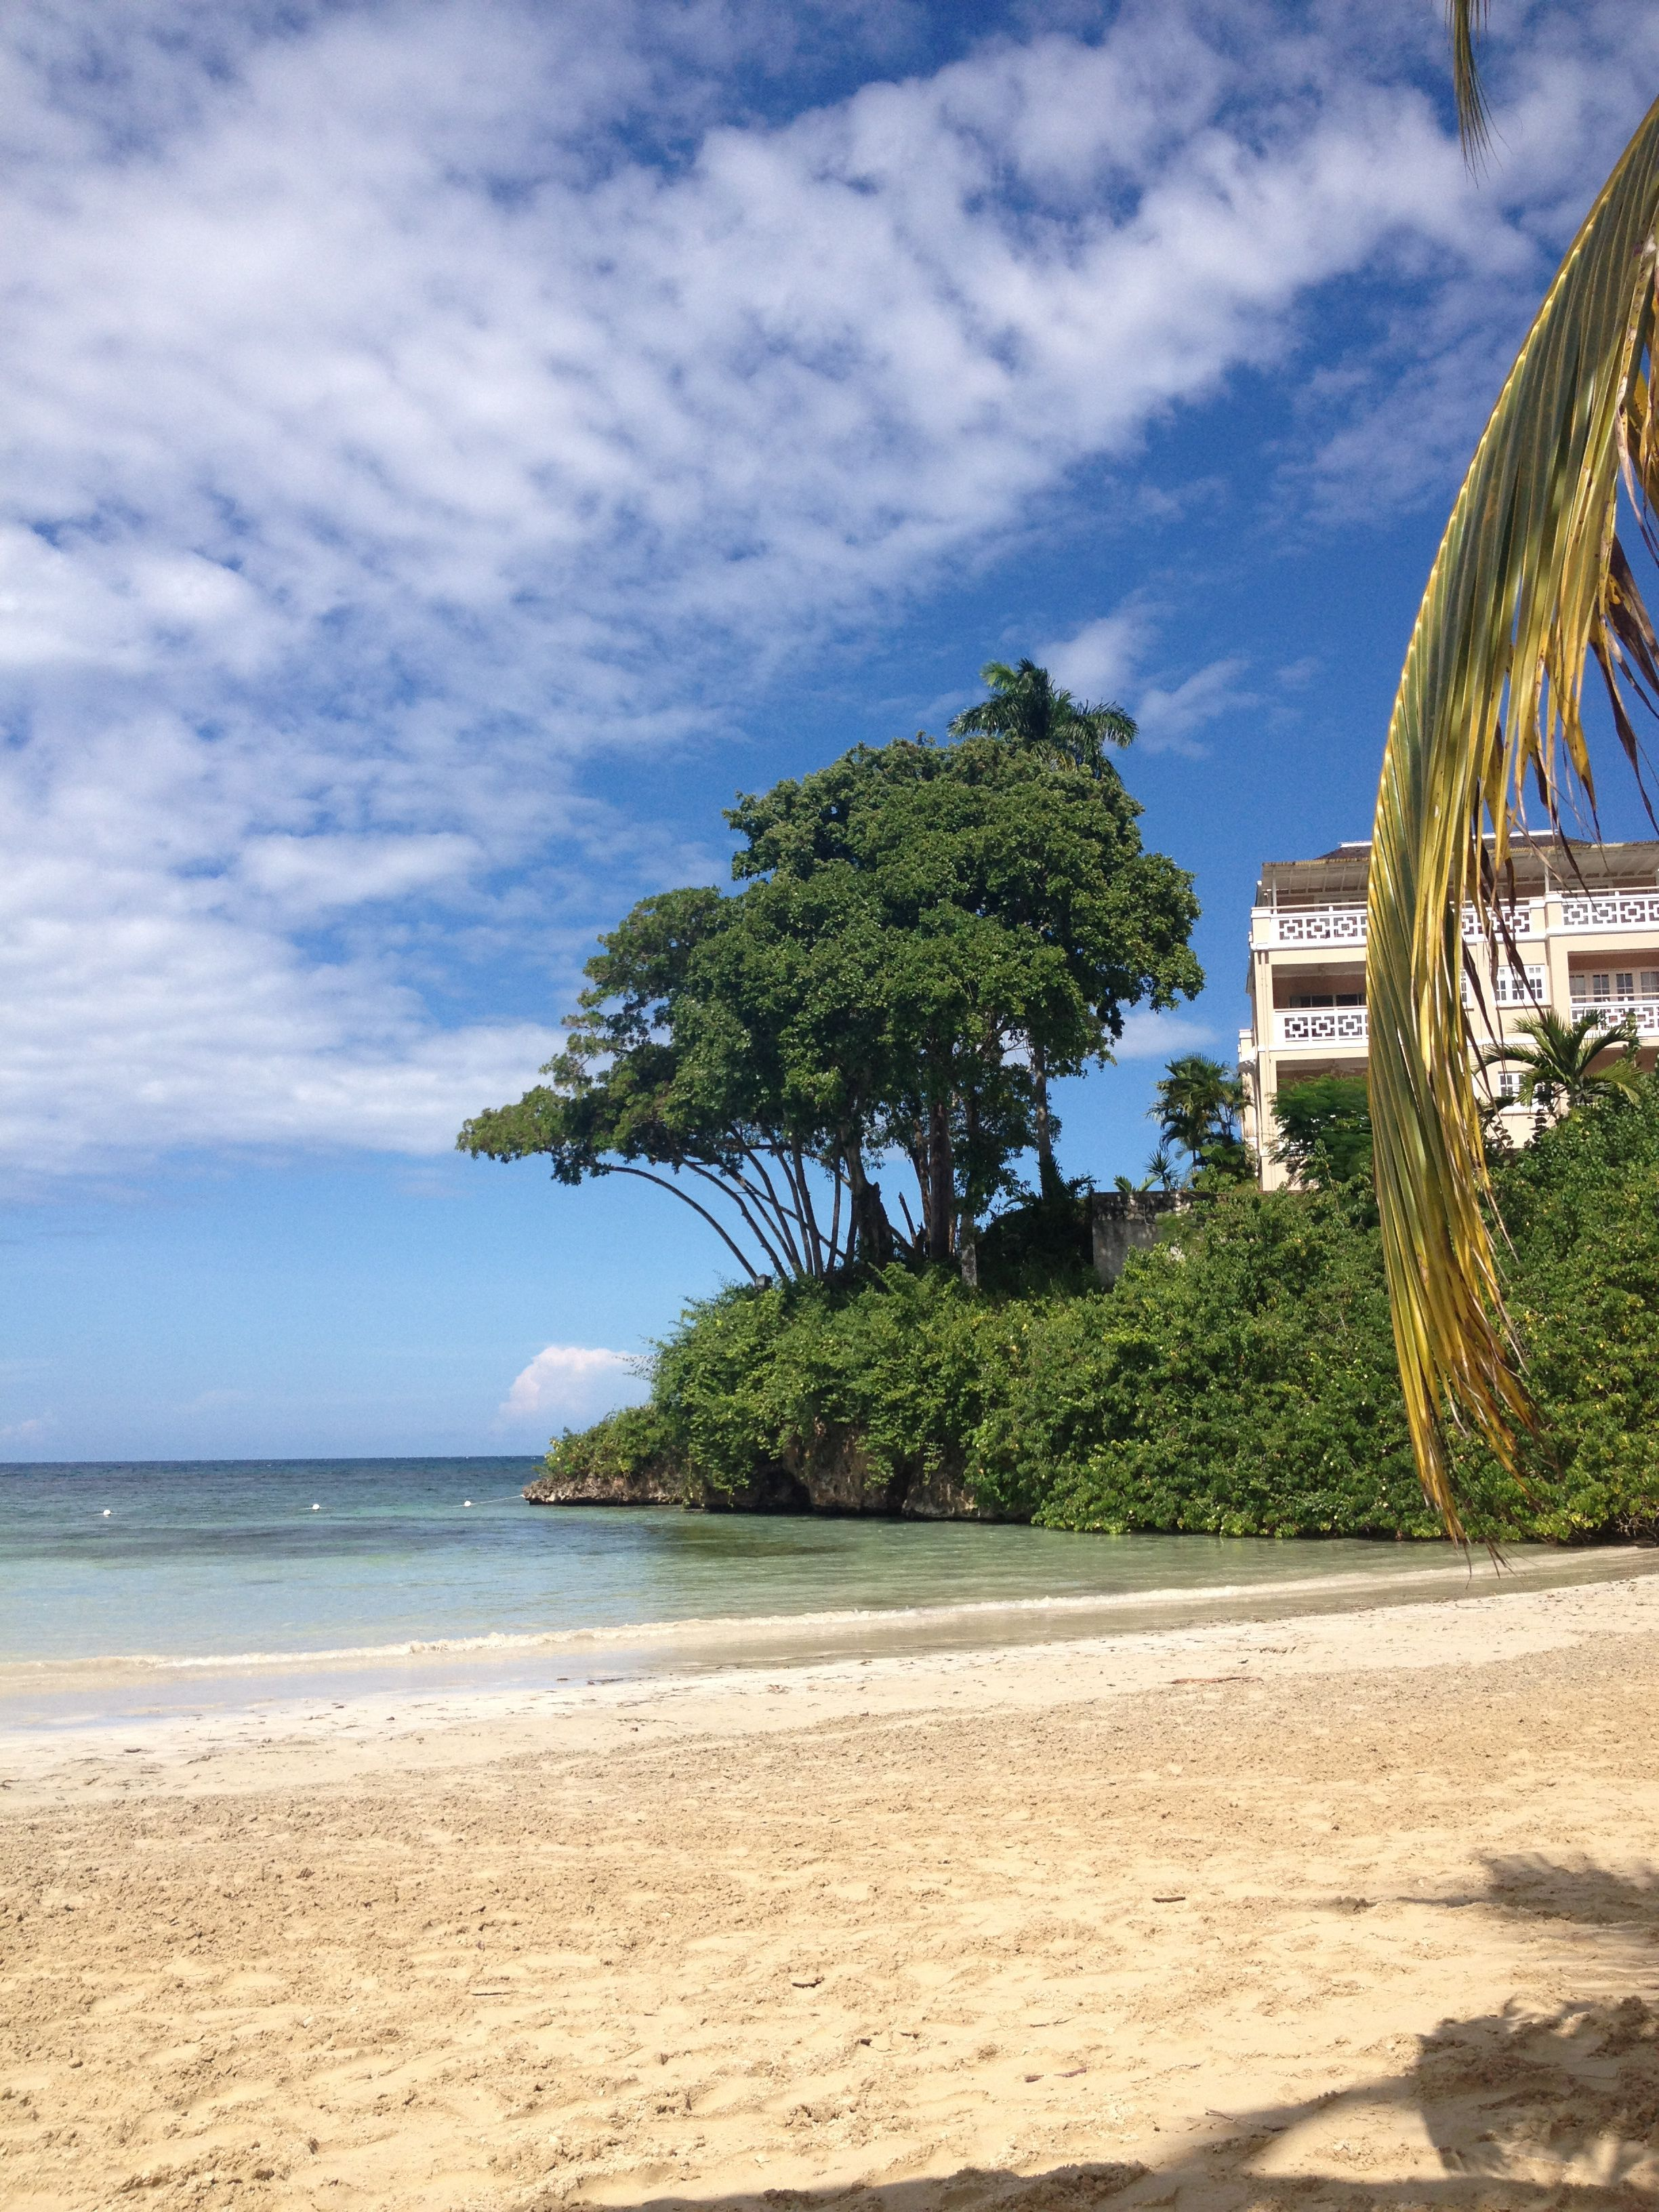 memories of relaxing and tranquility Couples Resorts sans